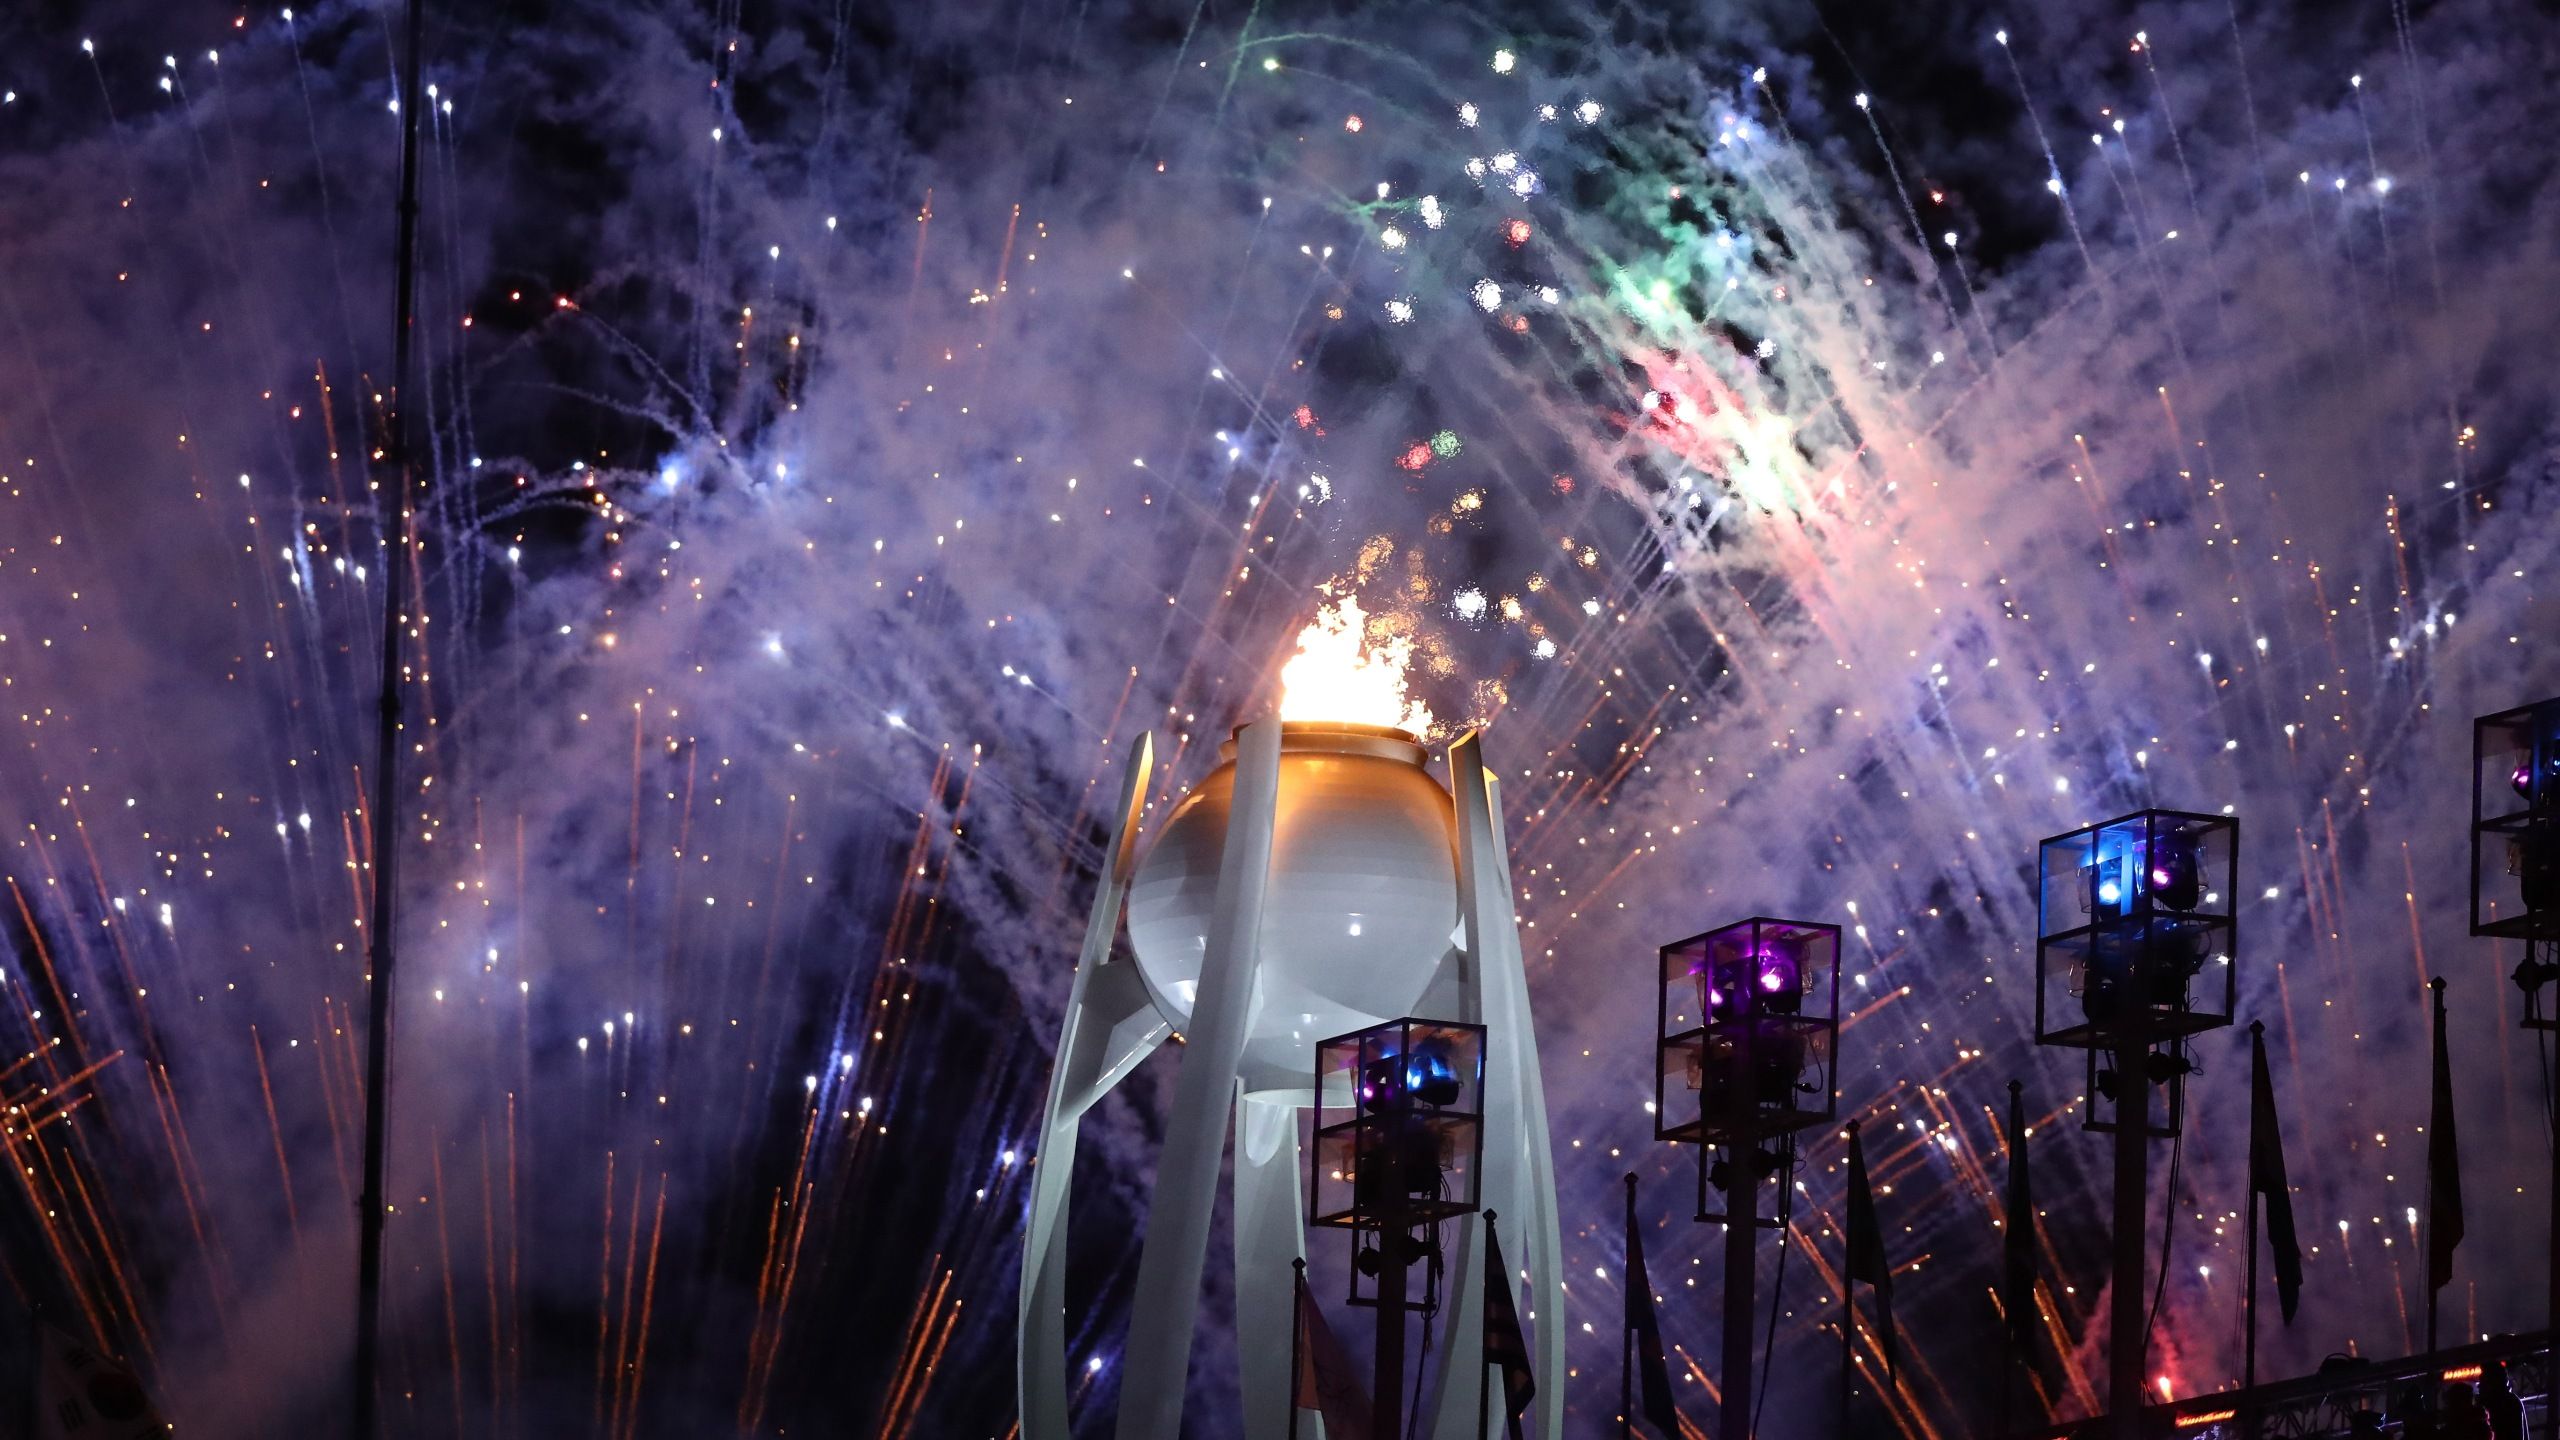 2018 Winter Olympic Games - Closing Ceremony_397067